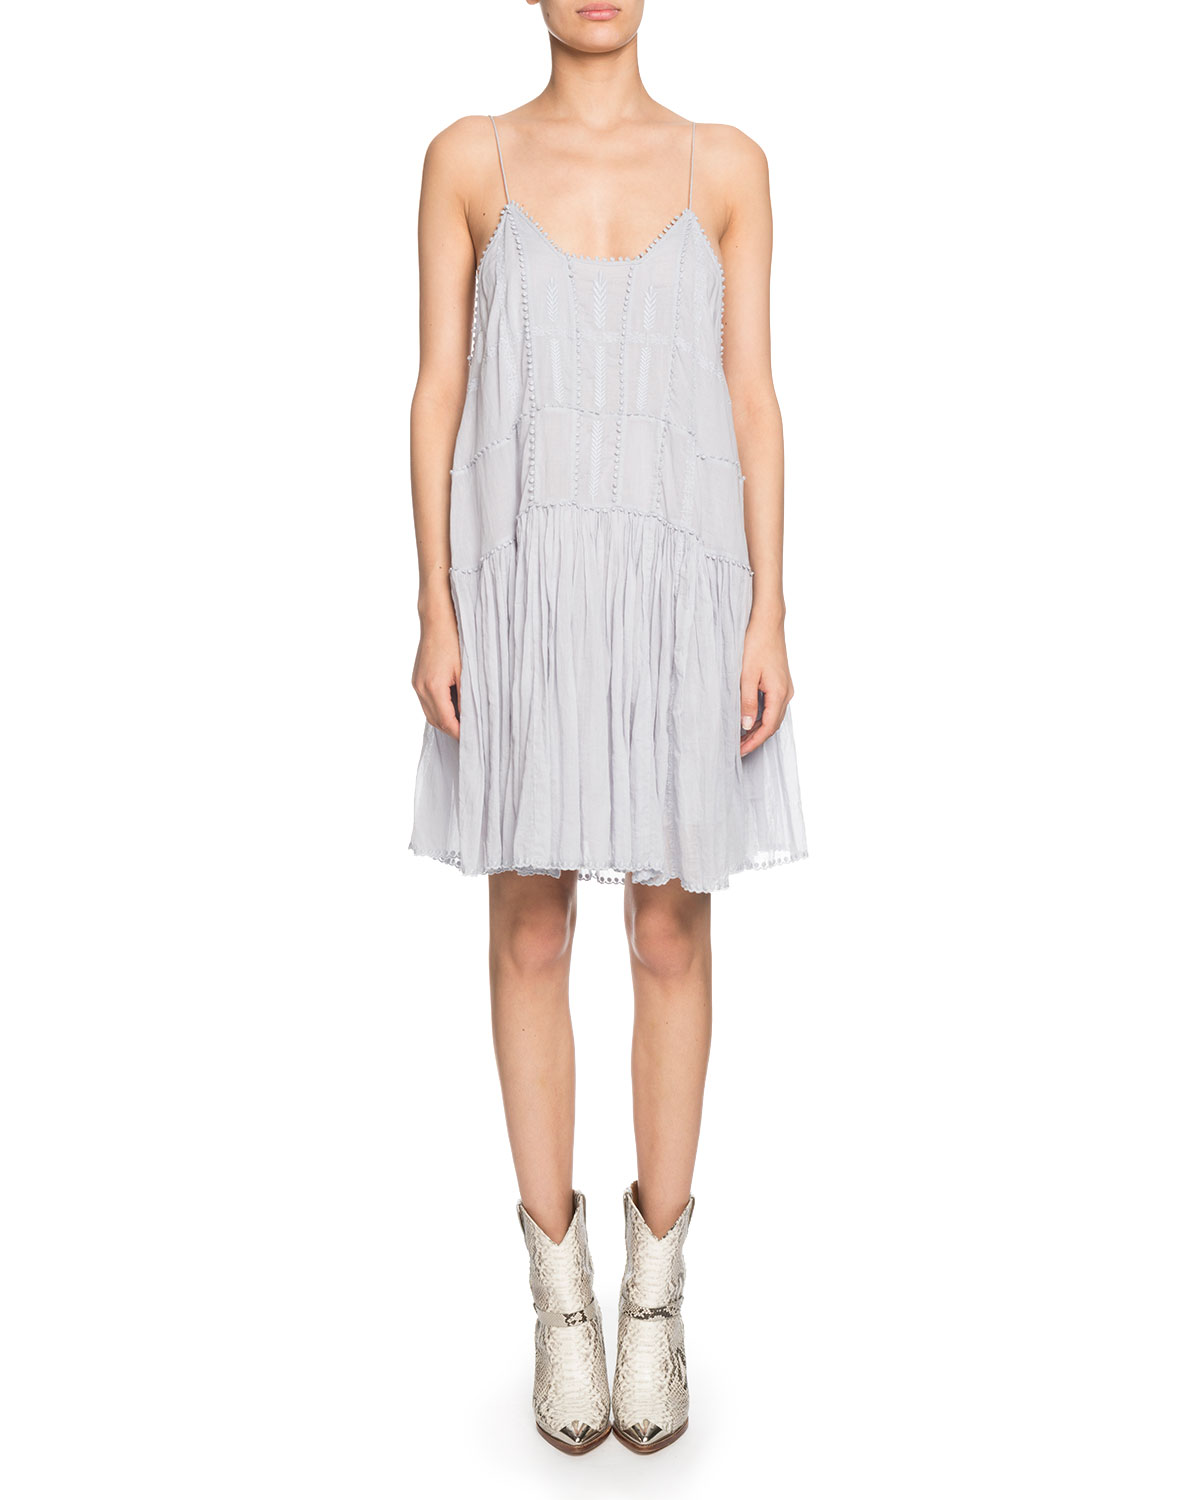 4e269ef3e8 Etoile Isabel Marant Amelie Embroidered Shift Dress